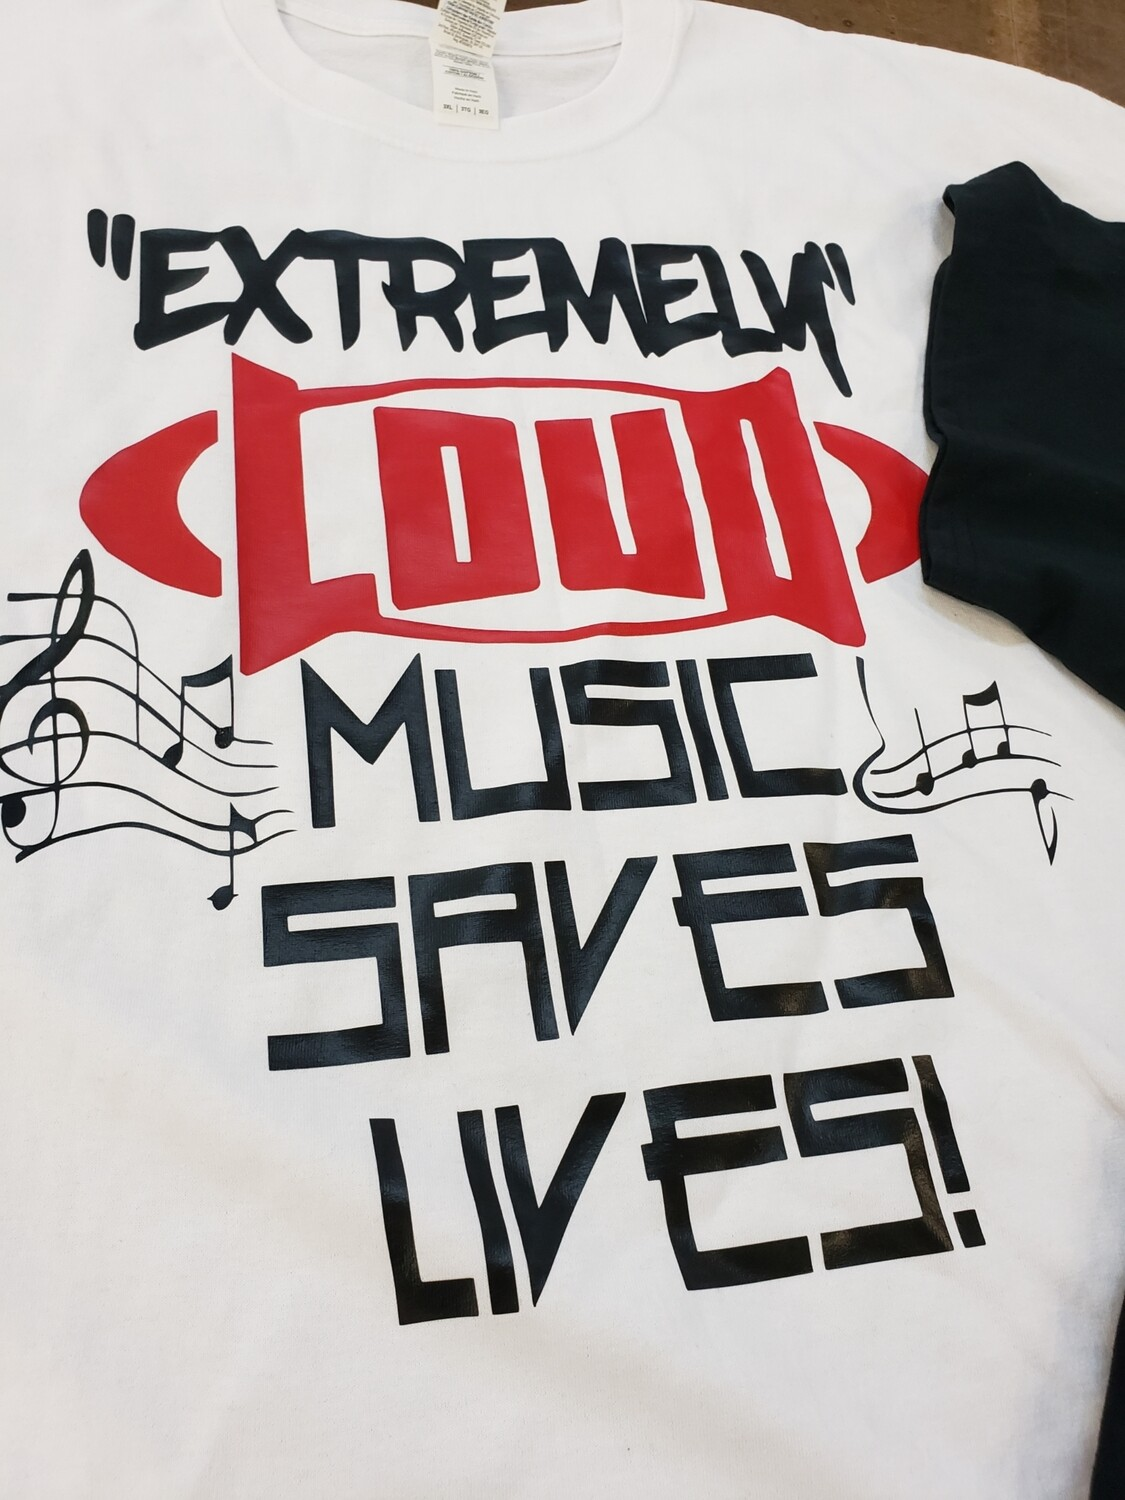 Loud music saves lives